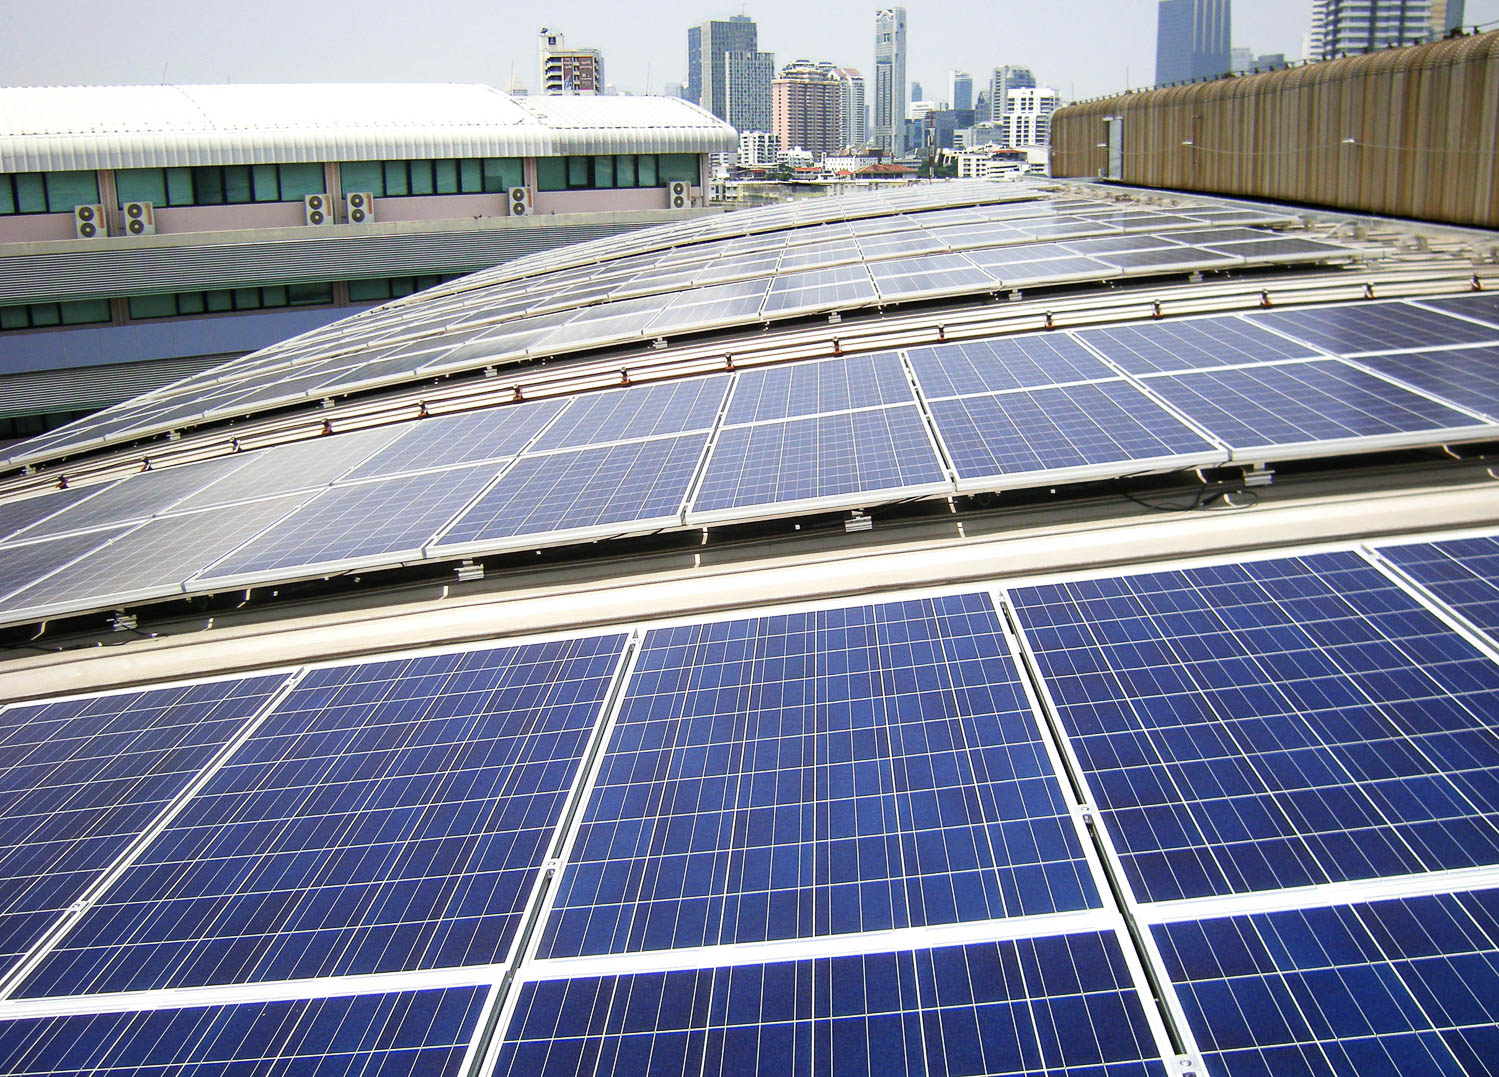 Utility Rate to Compare with Solar